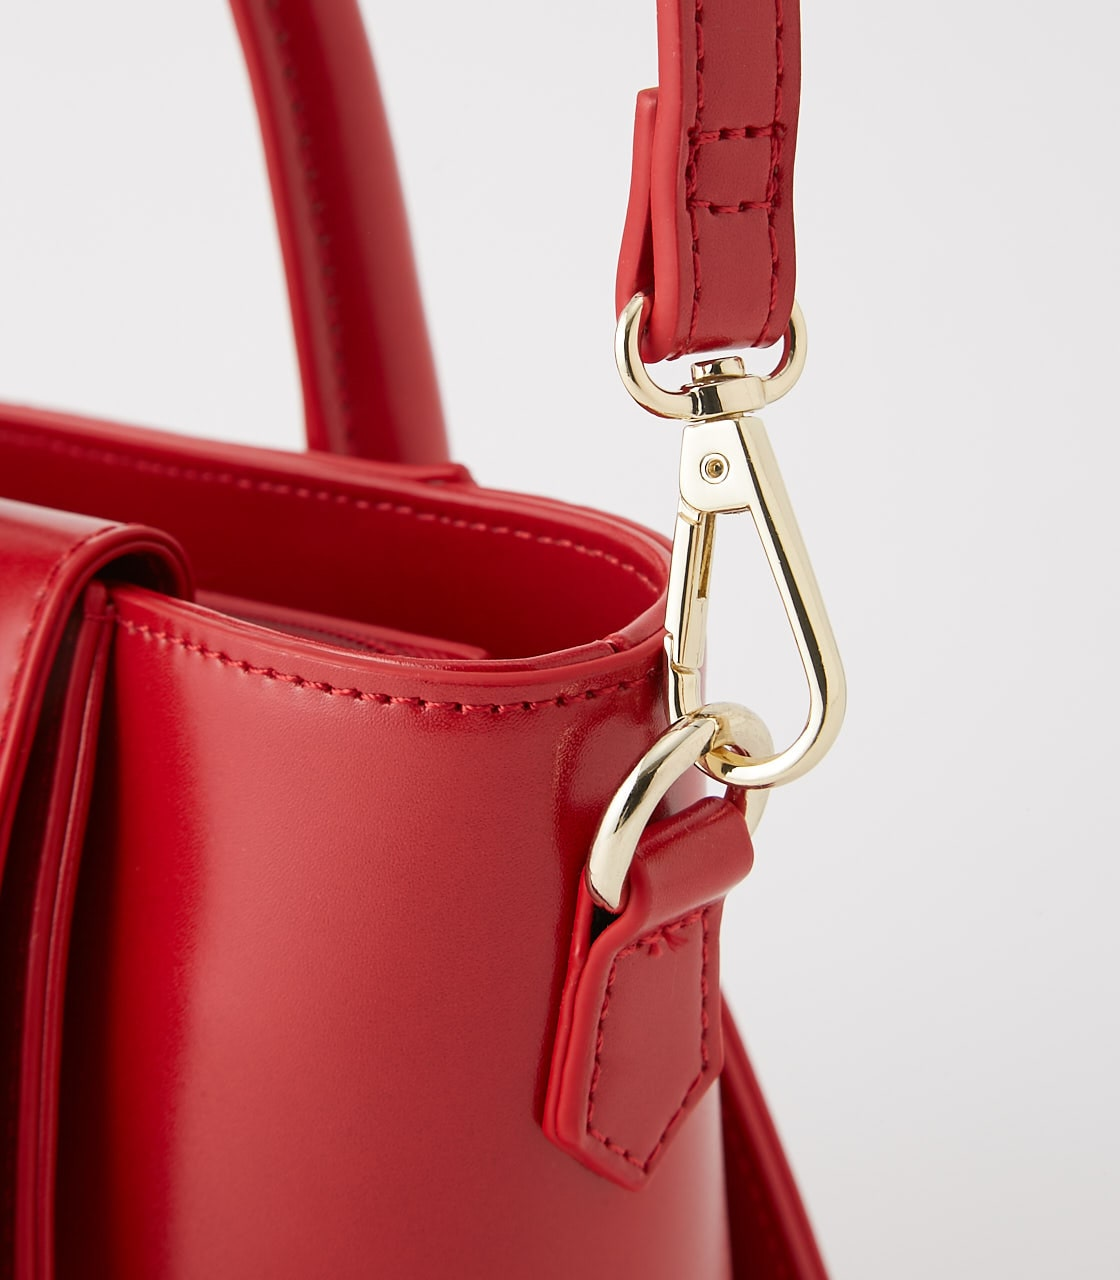 【AZUL BY MOUSSY】BELT DESIGN HAND BAG 詳細画像 RED 8